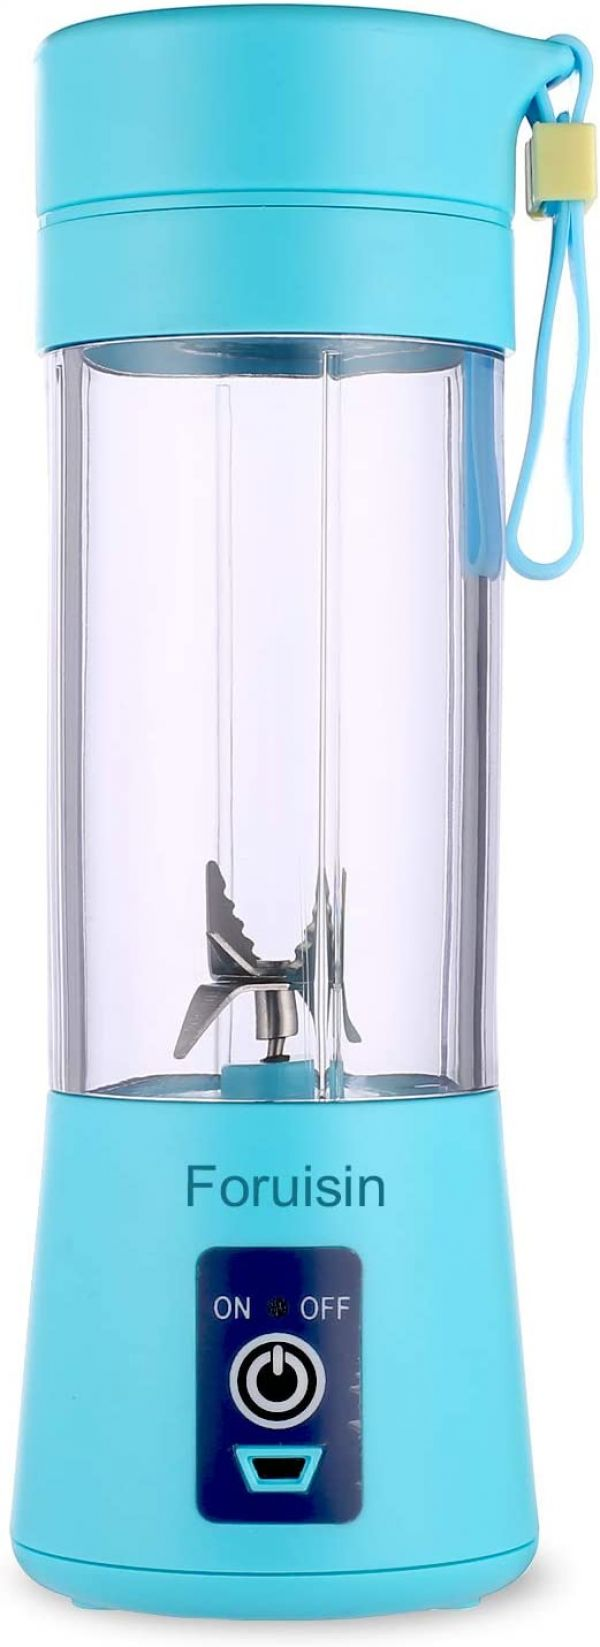 Portable Personal Blender, Household Juicer Fruit Shake Mixer -Six Blades, 380ml Baby Cooking Machine with USB Charger Cable (Blue)